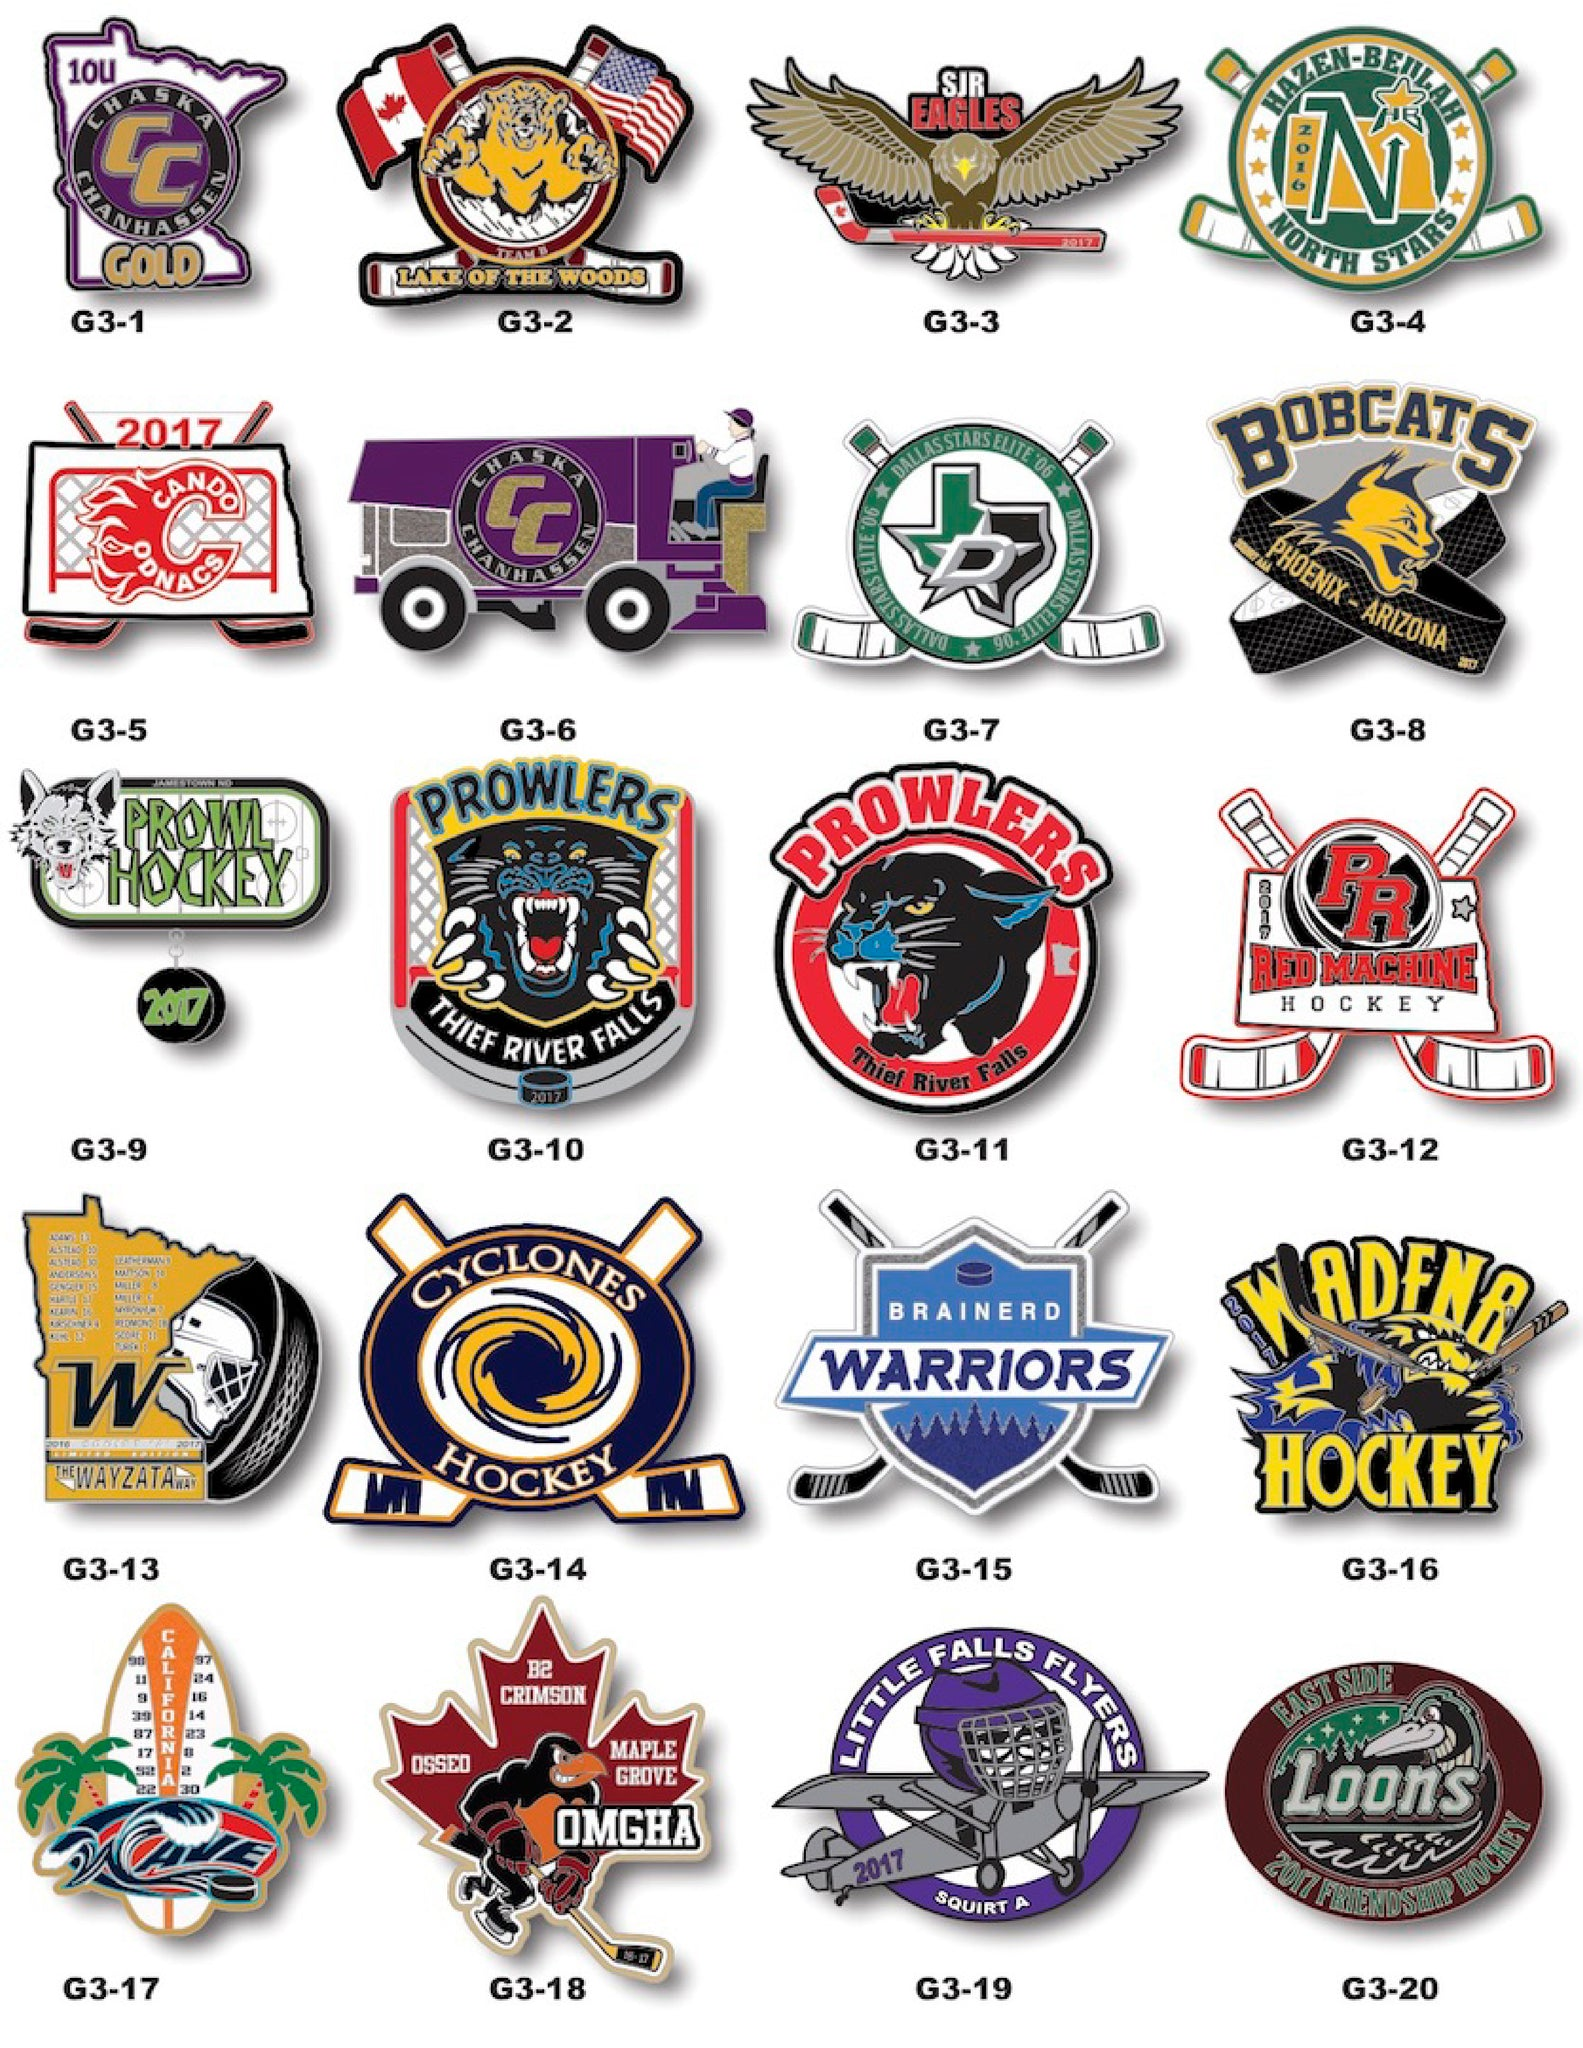 Hockey Trading Pin Gallery #3 - SteelBerry Pins